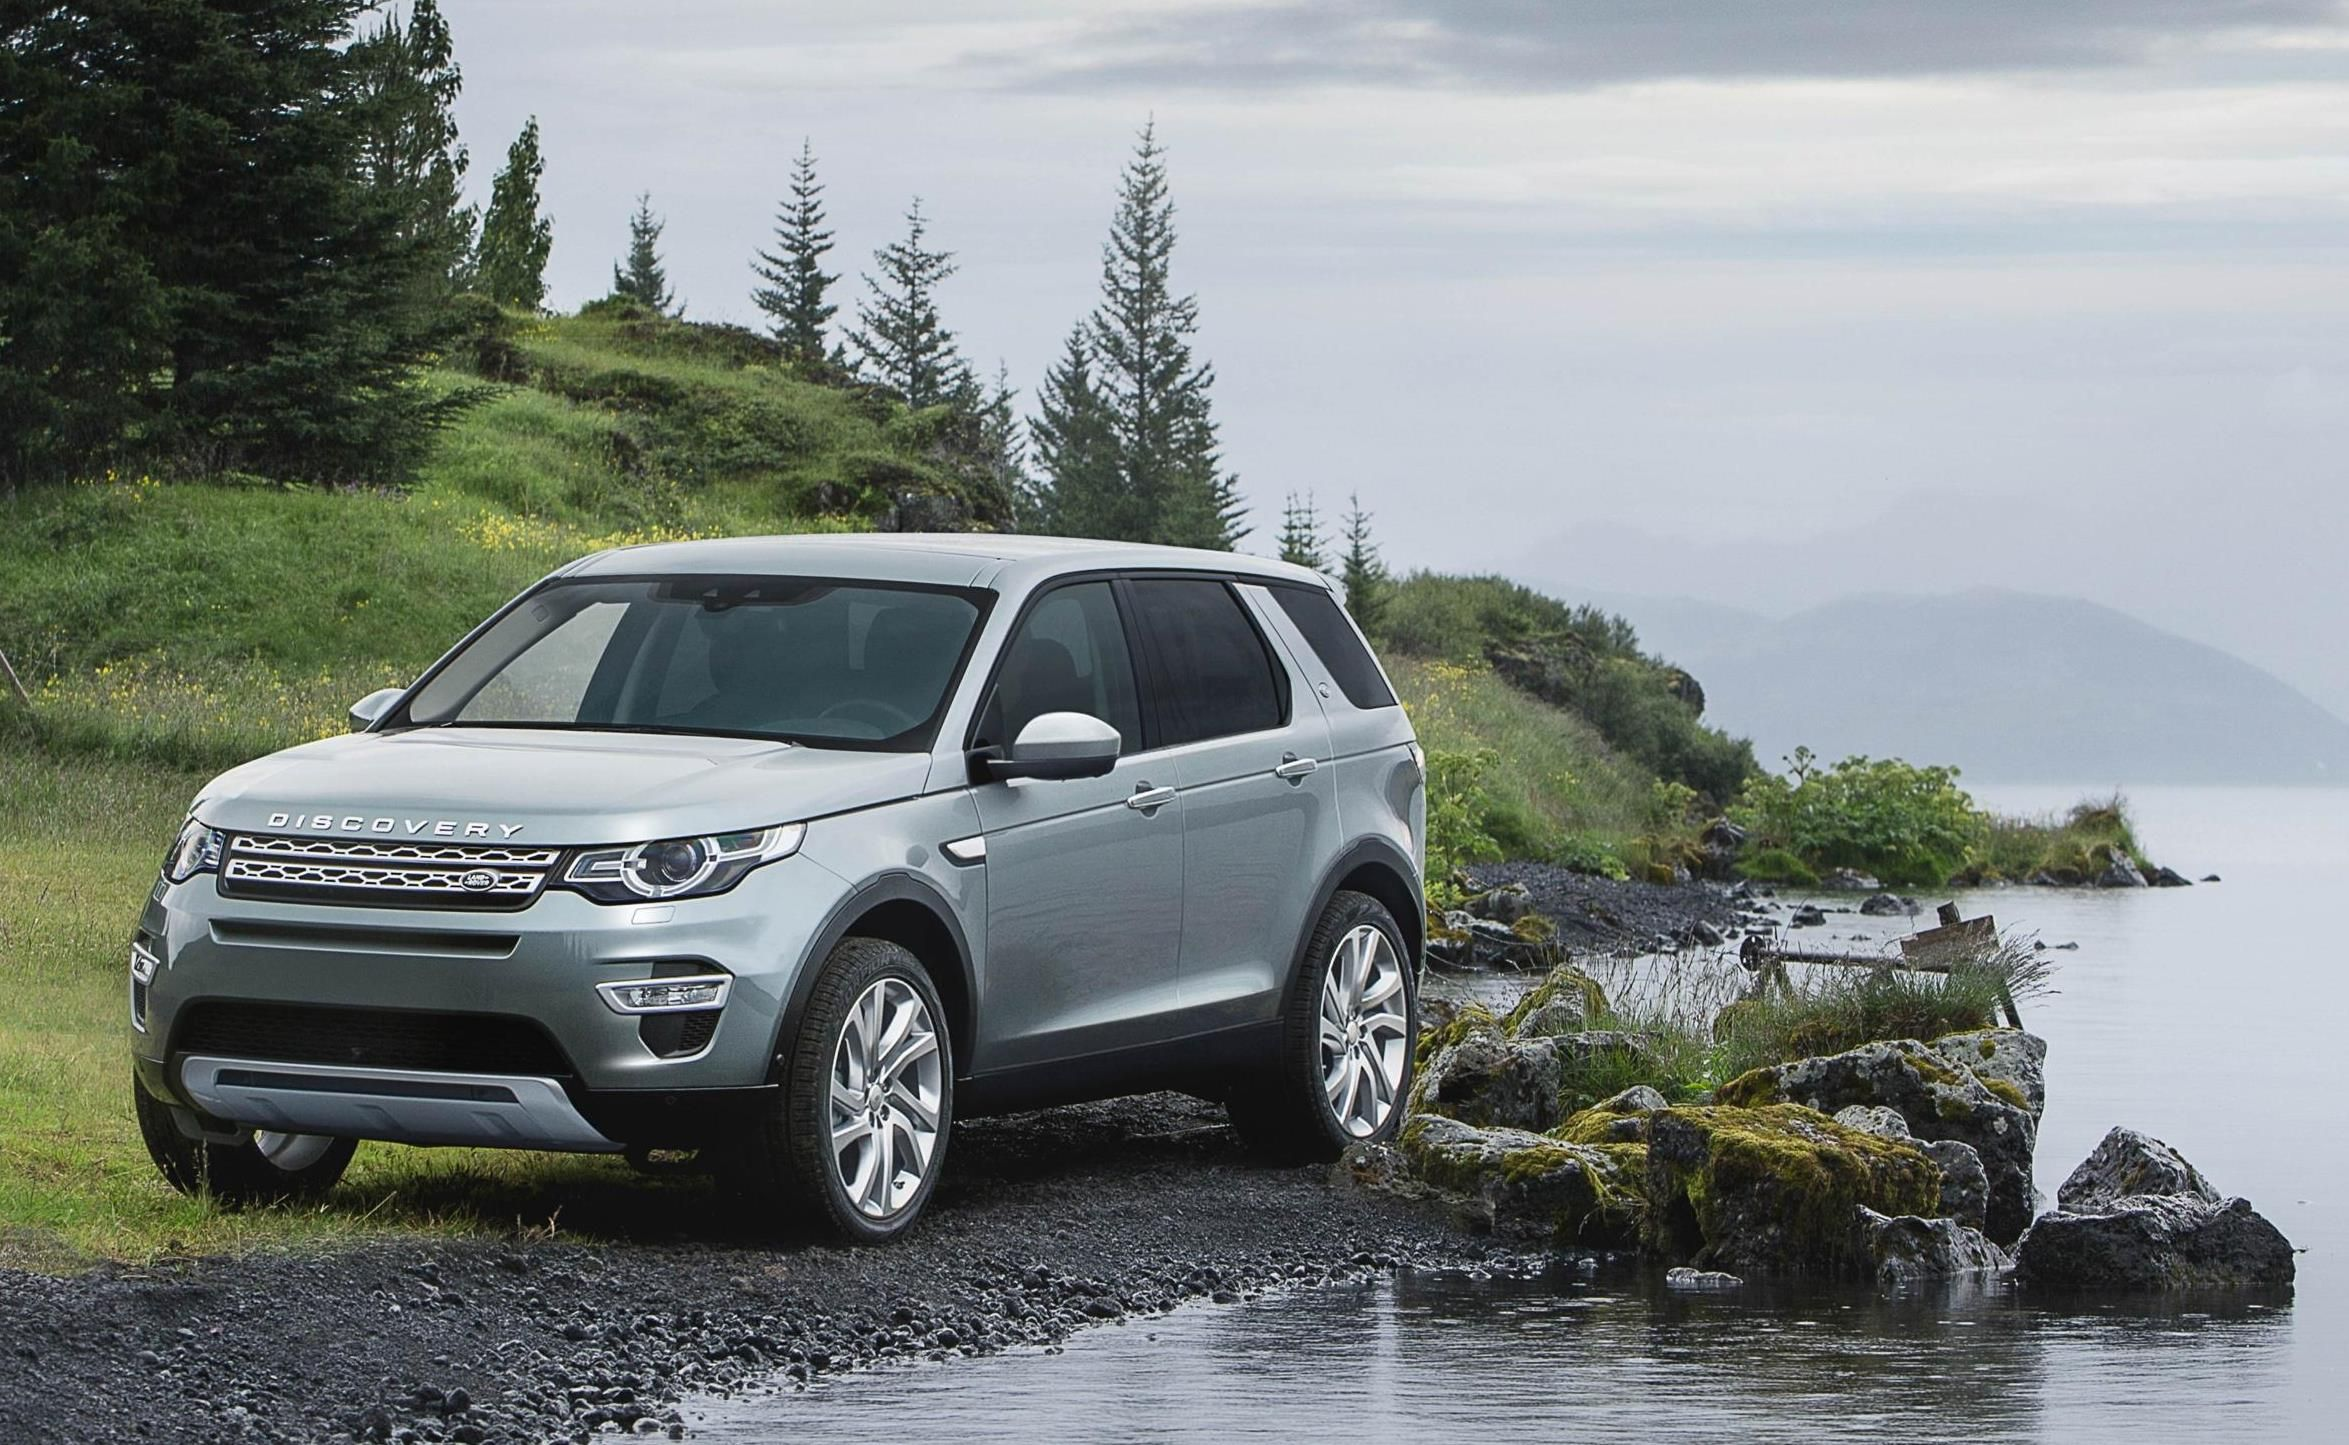 svr land review drive landrover price content autonxt rover first sport automotive perry range stern experience